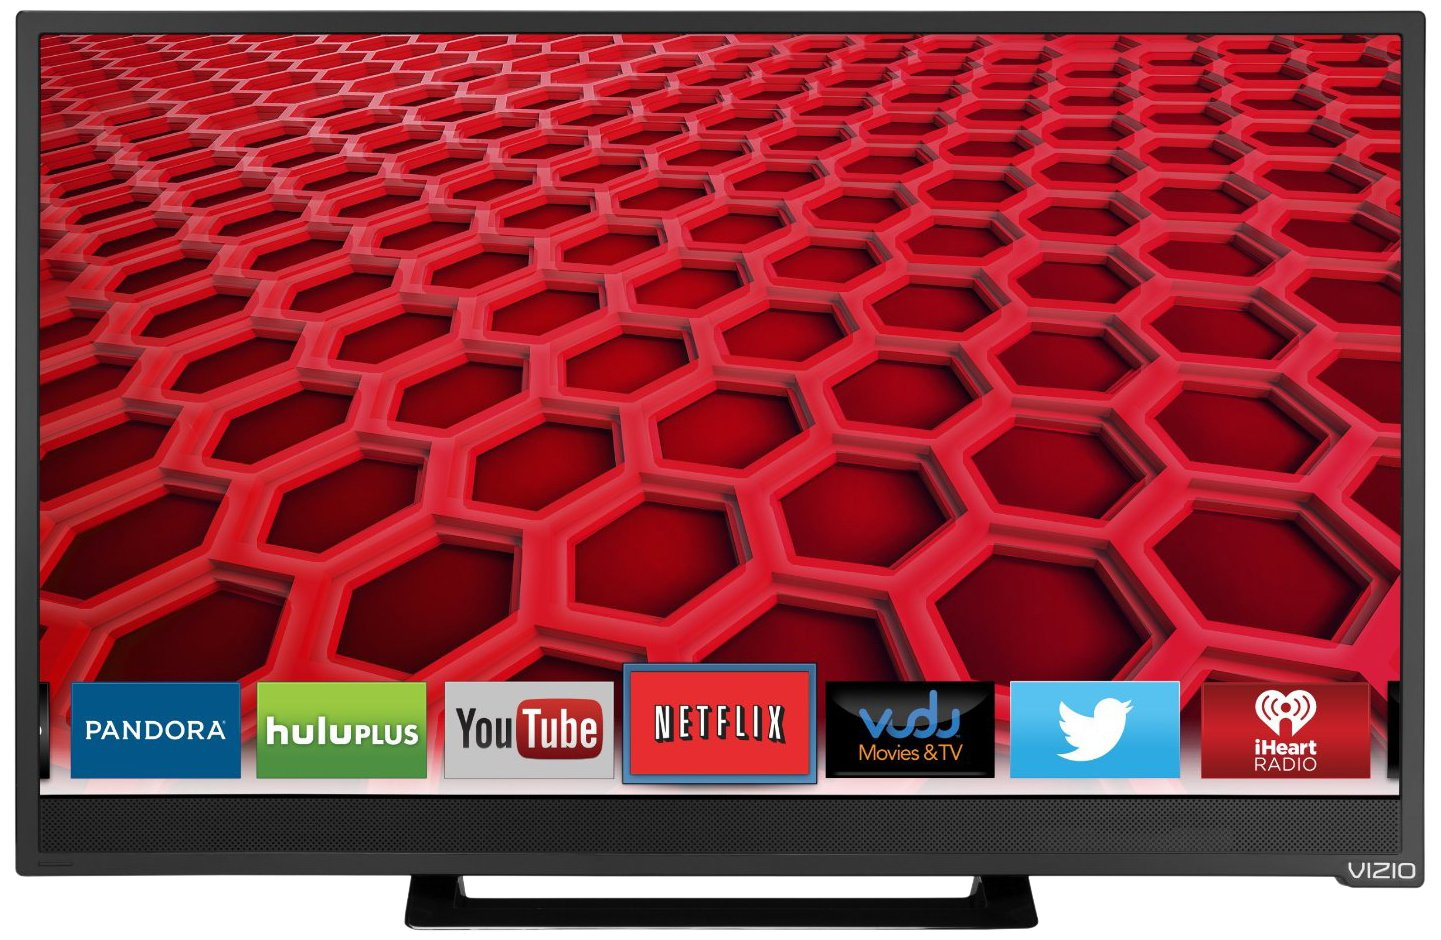 VIZIO E420i-B0 42-Inch LED Smart TV Review